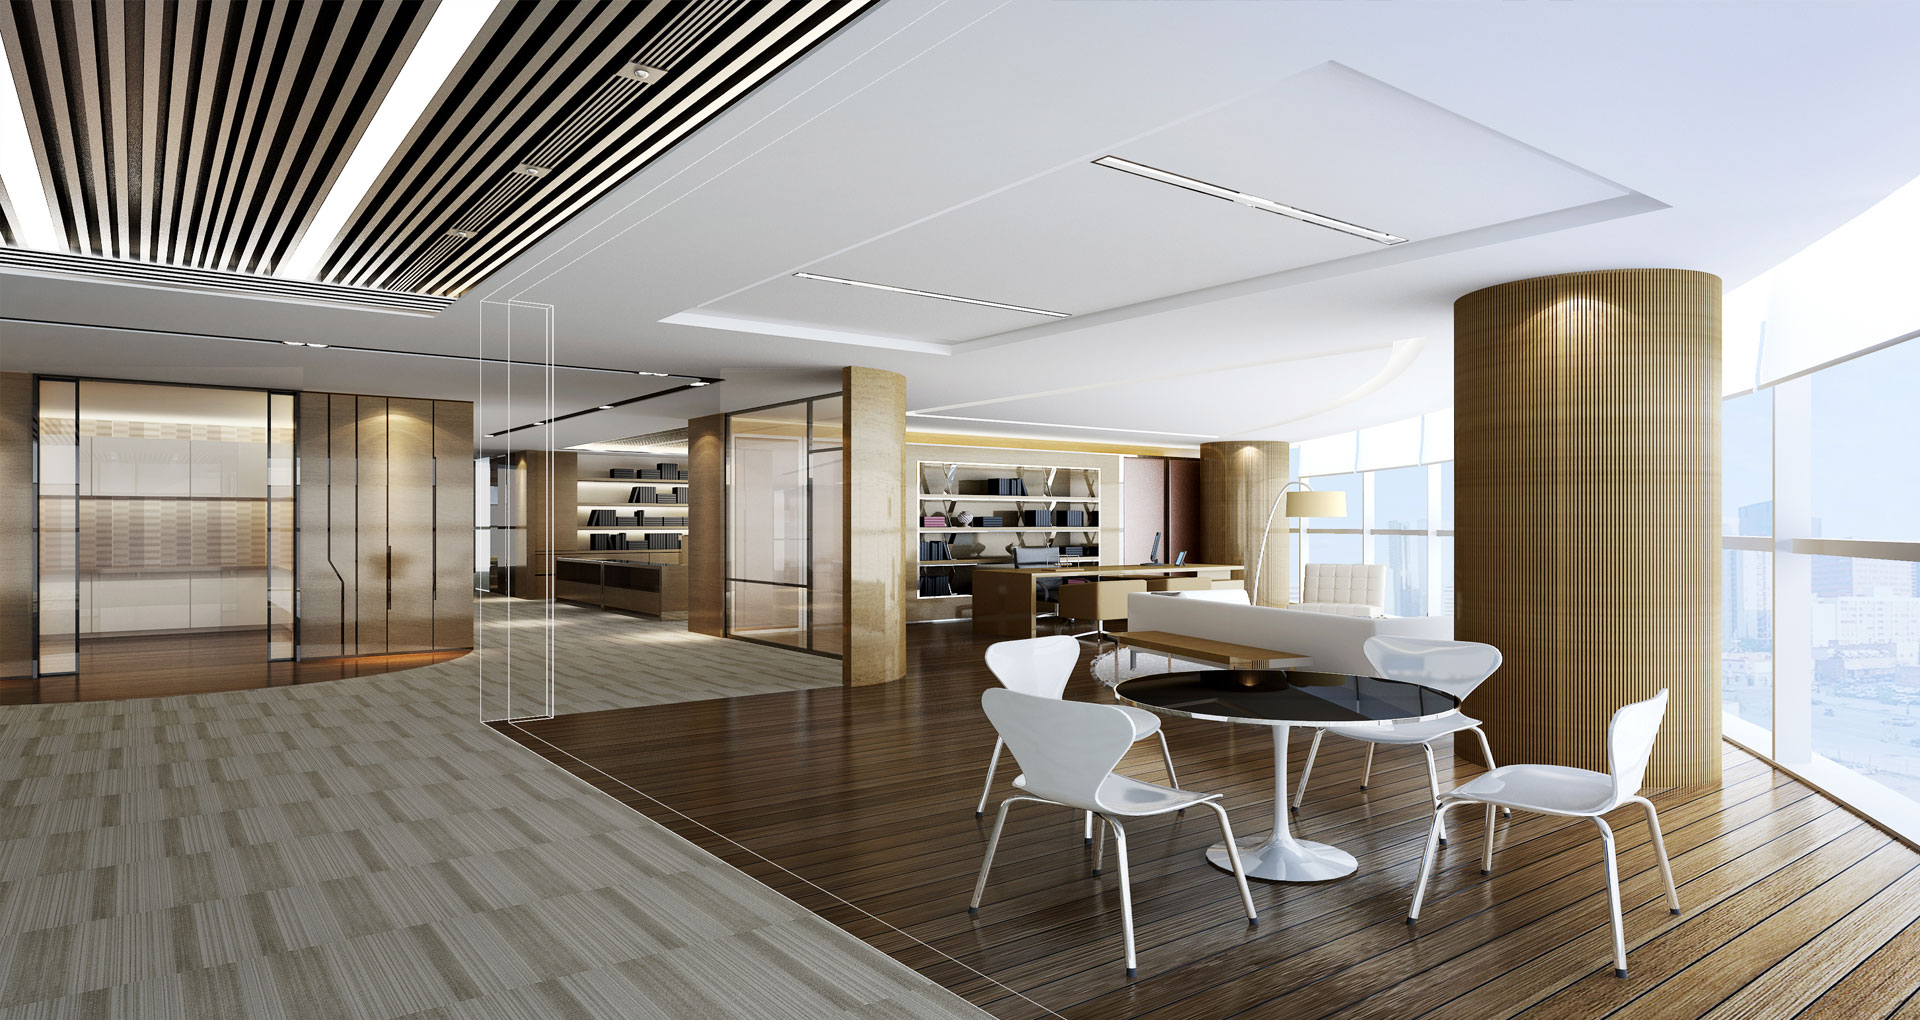 Office interior design inpro concepts design for The interior designer